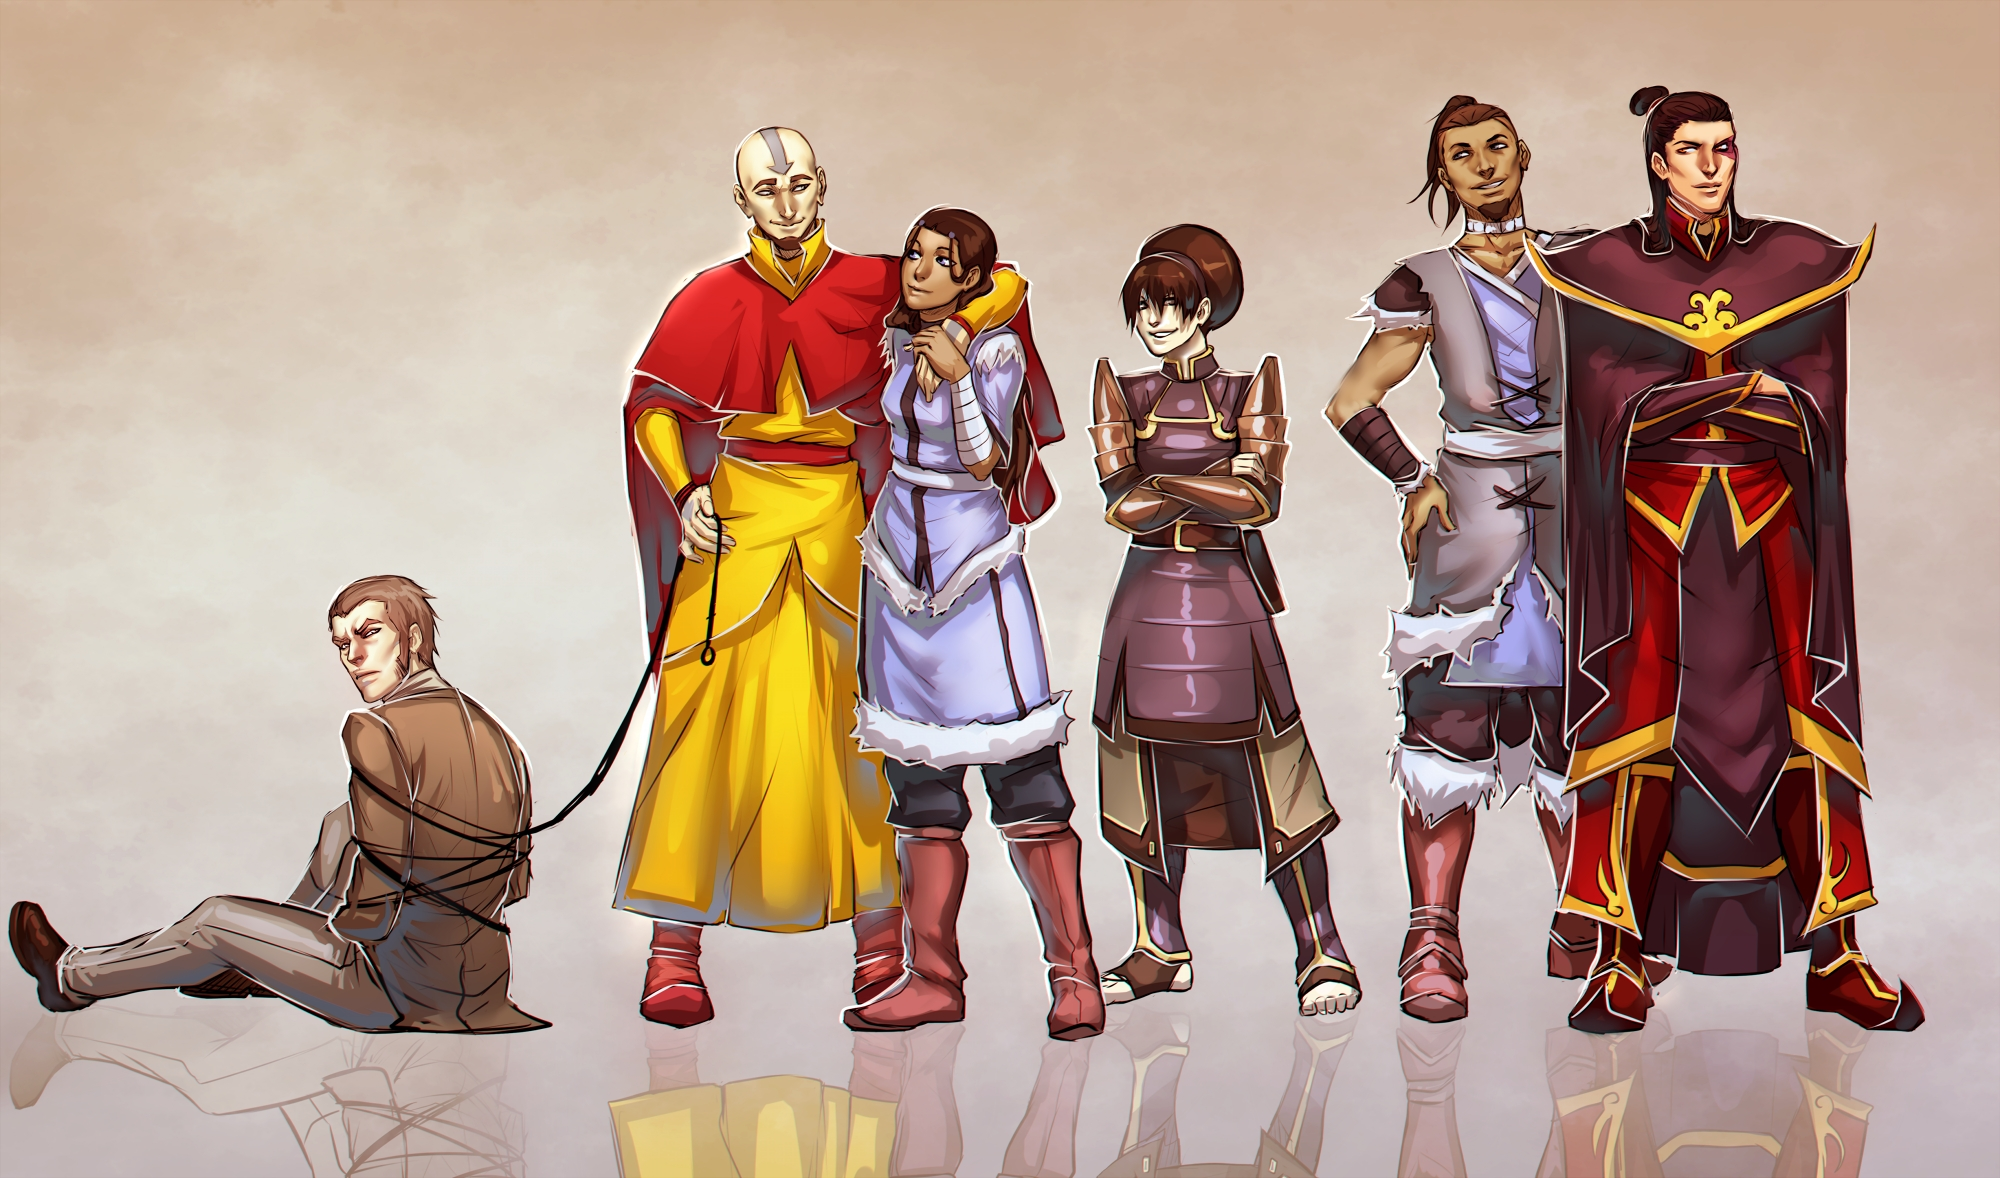 Avatar the Last Airbender Characters Grown Up